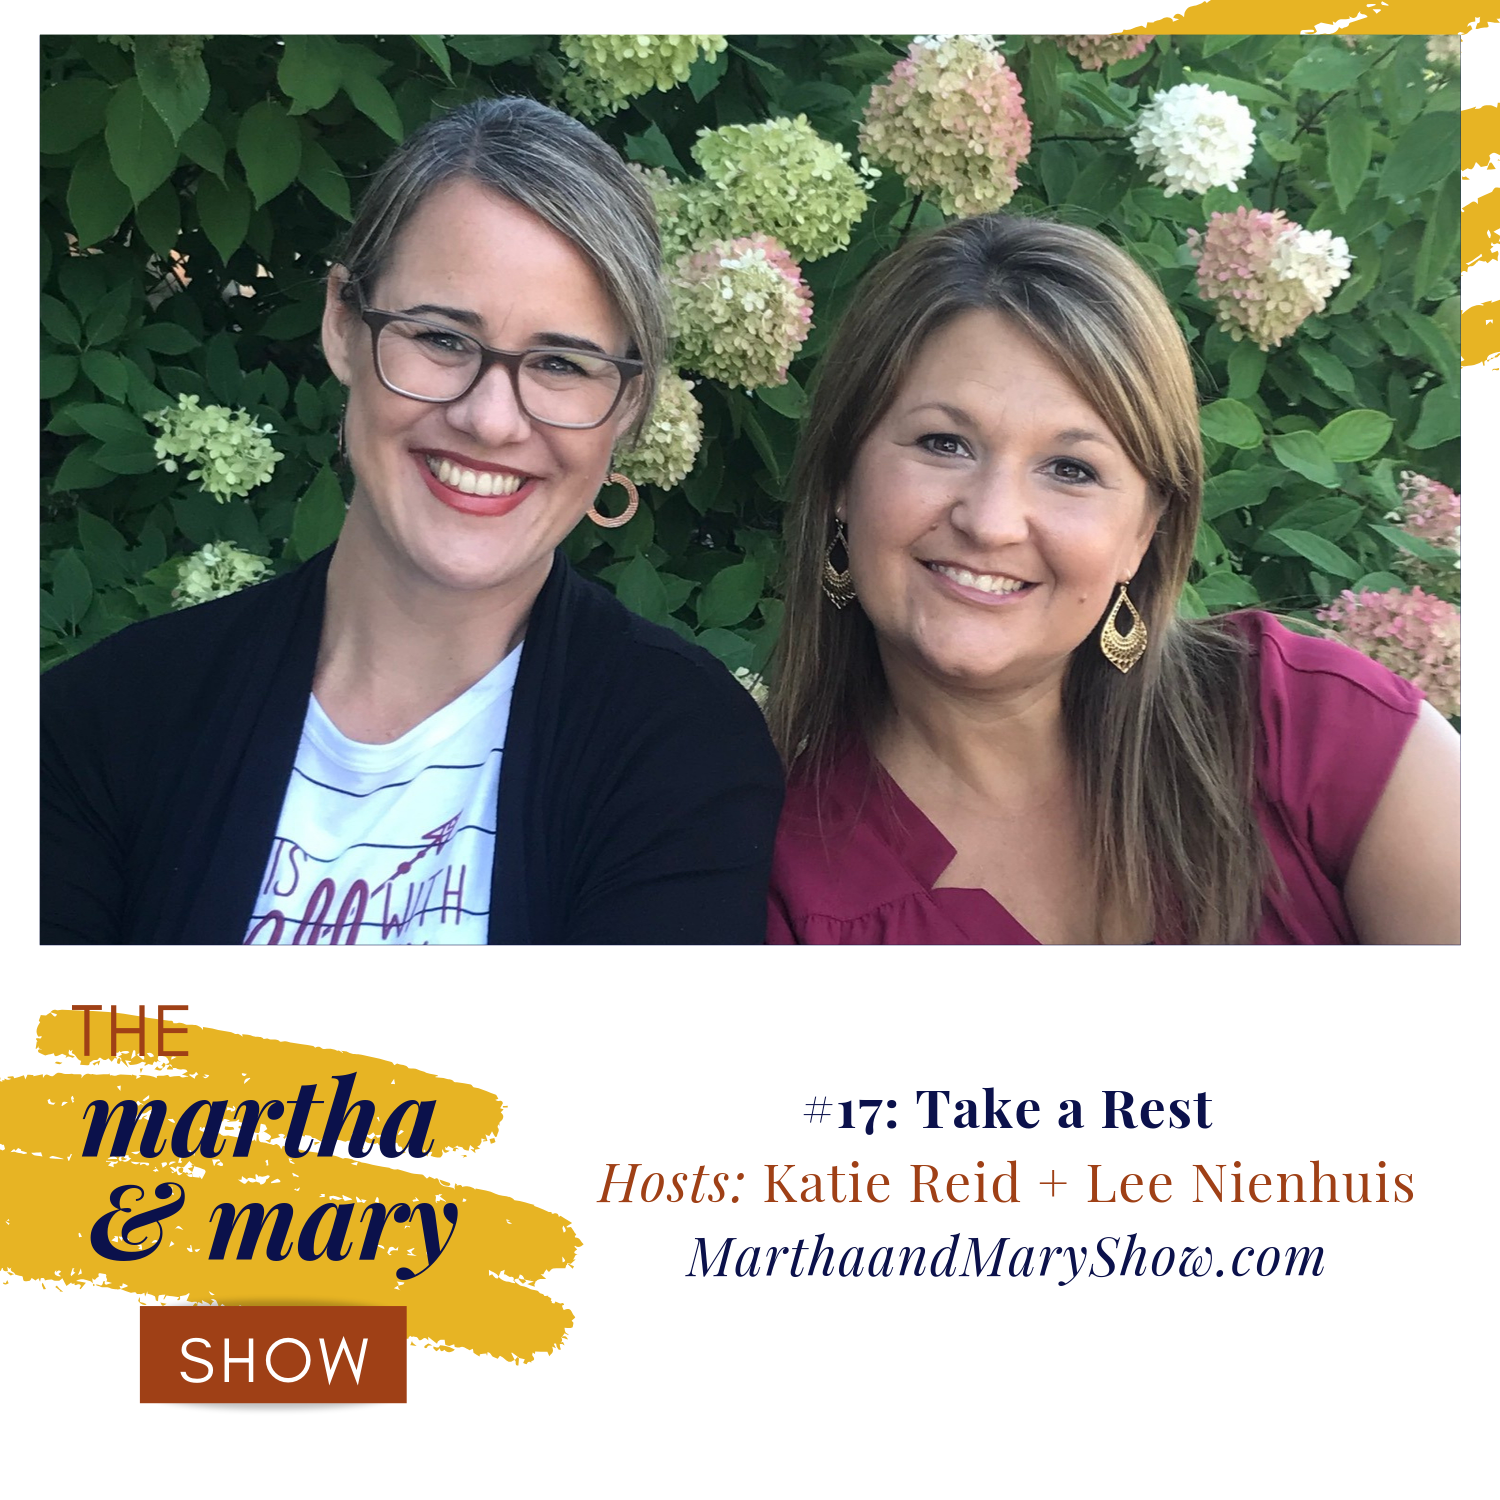 Take a Rest Katie Reid Lee Nienhuis hosts Martha Mary Show